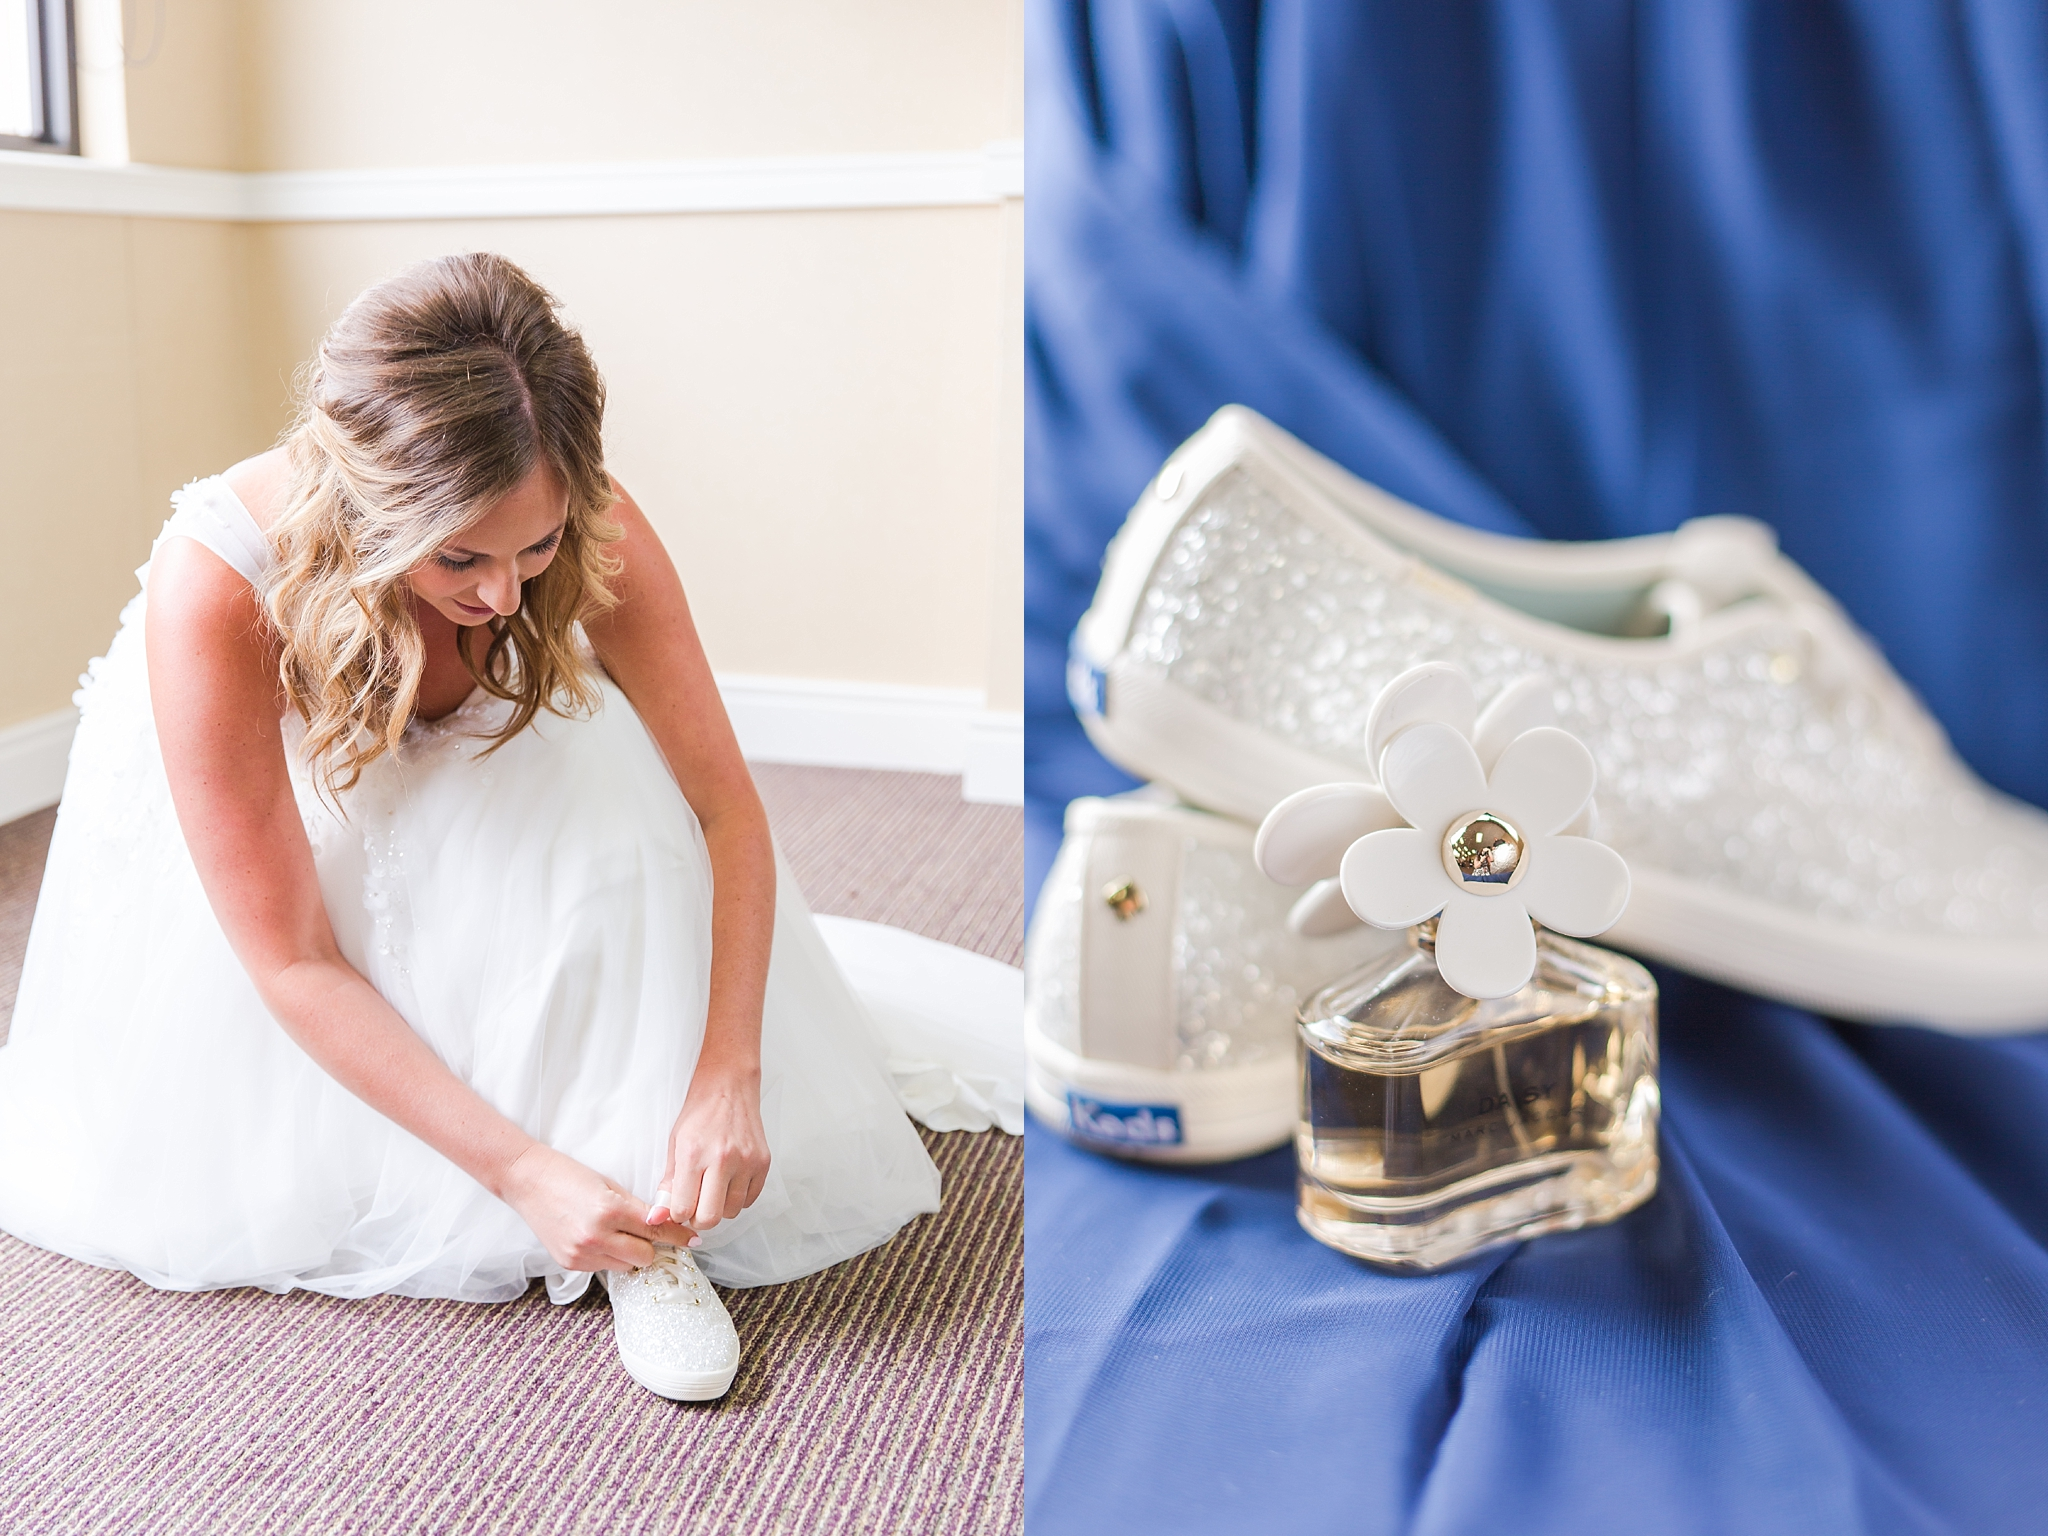 joyful-candid-laid-back-wedding-photos-in-ann-arbor-michigan-and-at-the-eagle-crest-golf-resort-by-courtney-carolyn-photography_0016.jpg